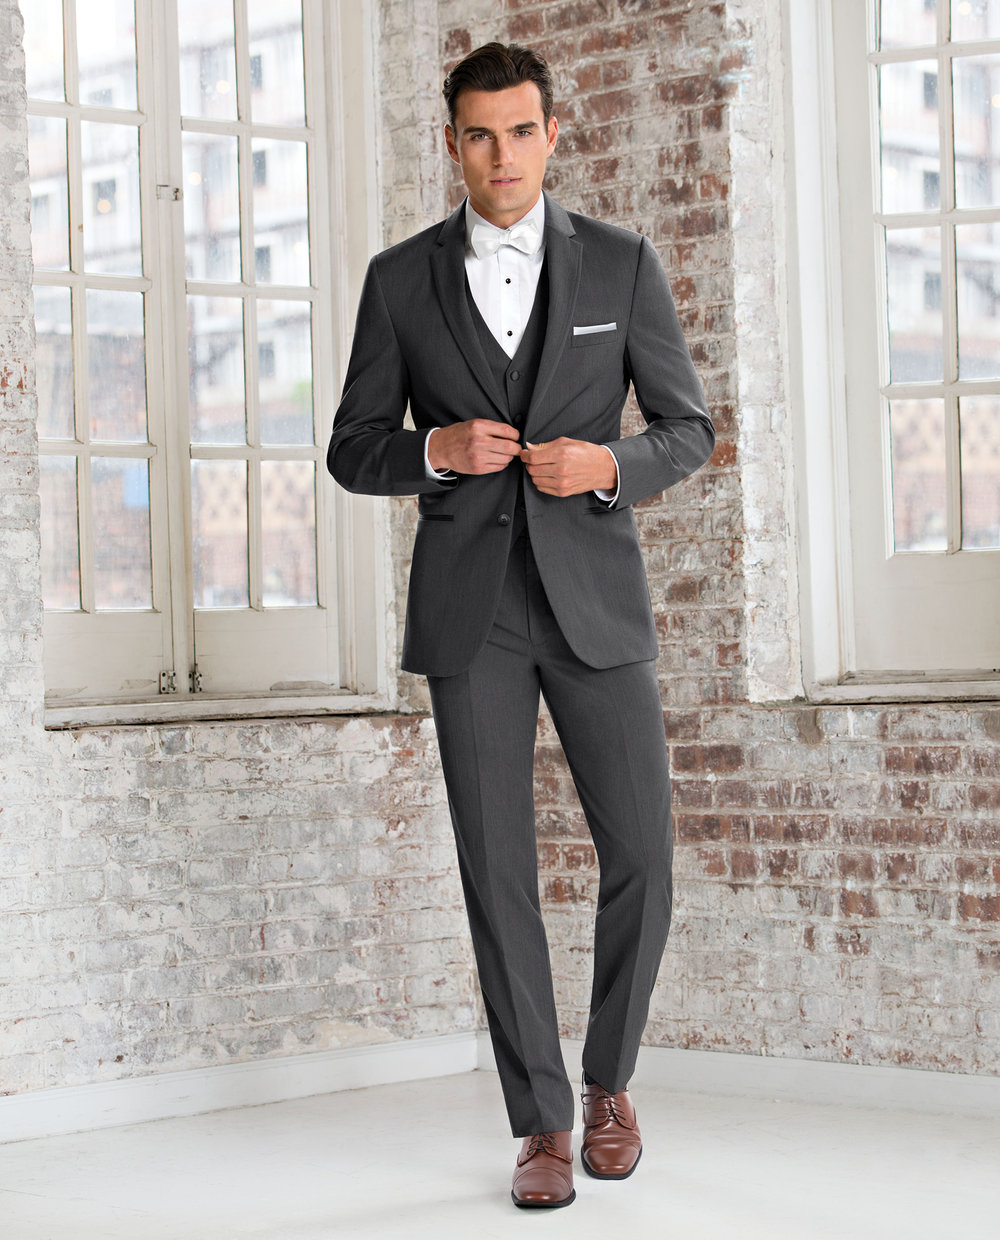 391 - Steel Grey Ultra Slim.jpg